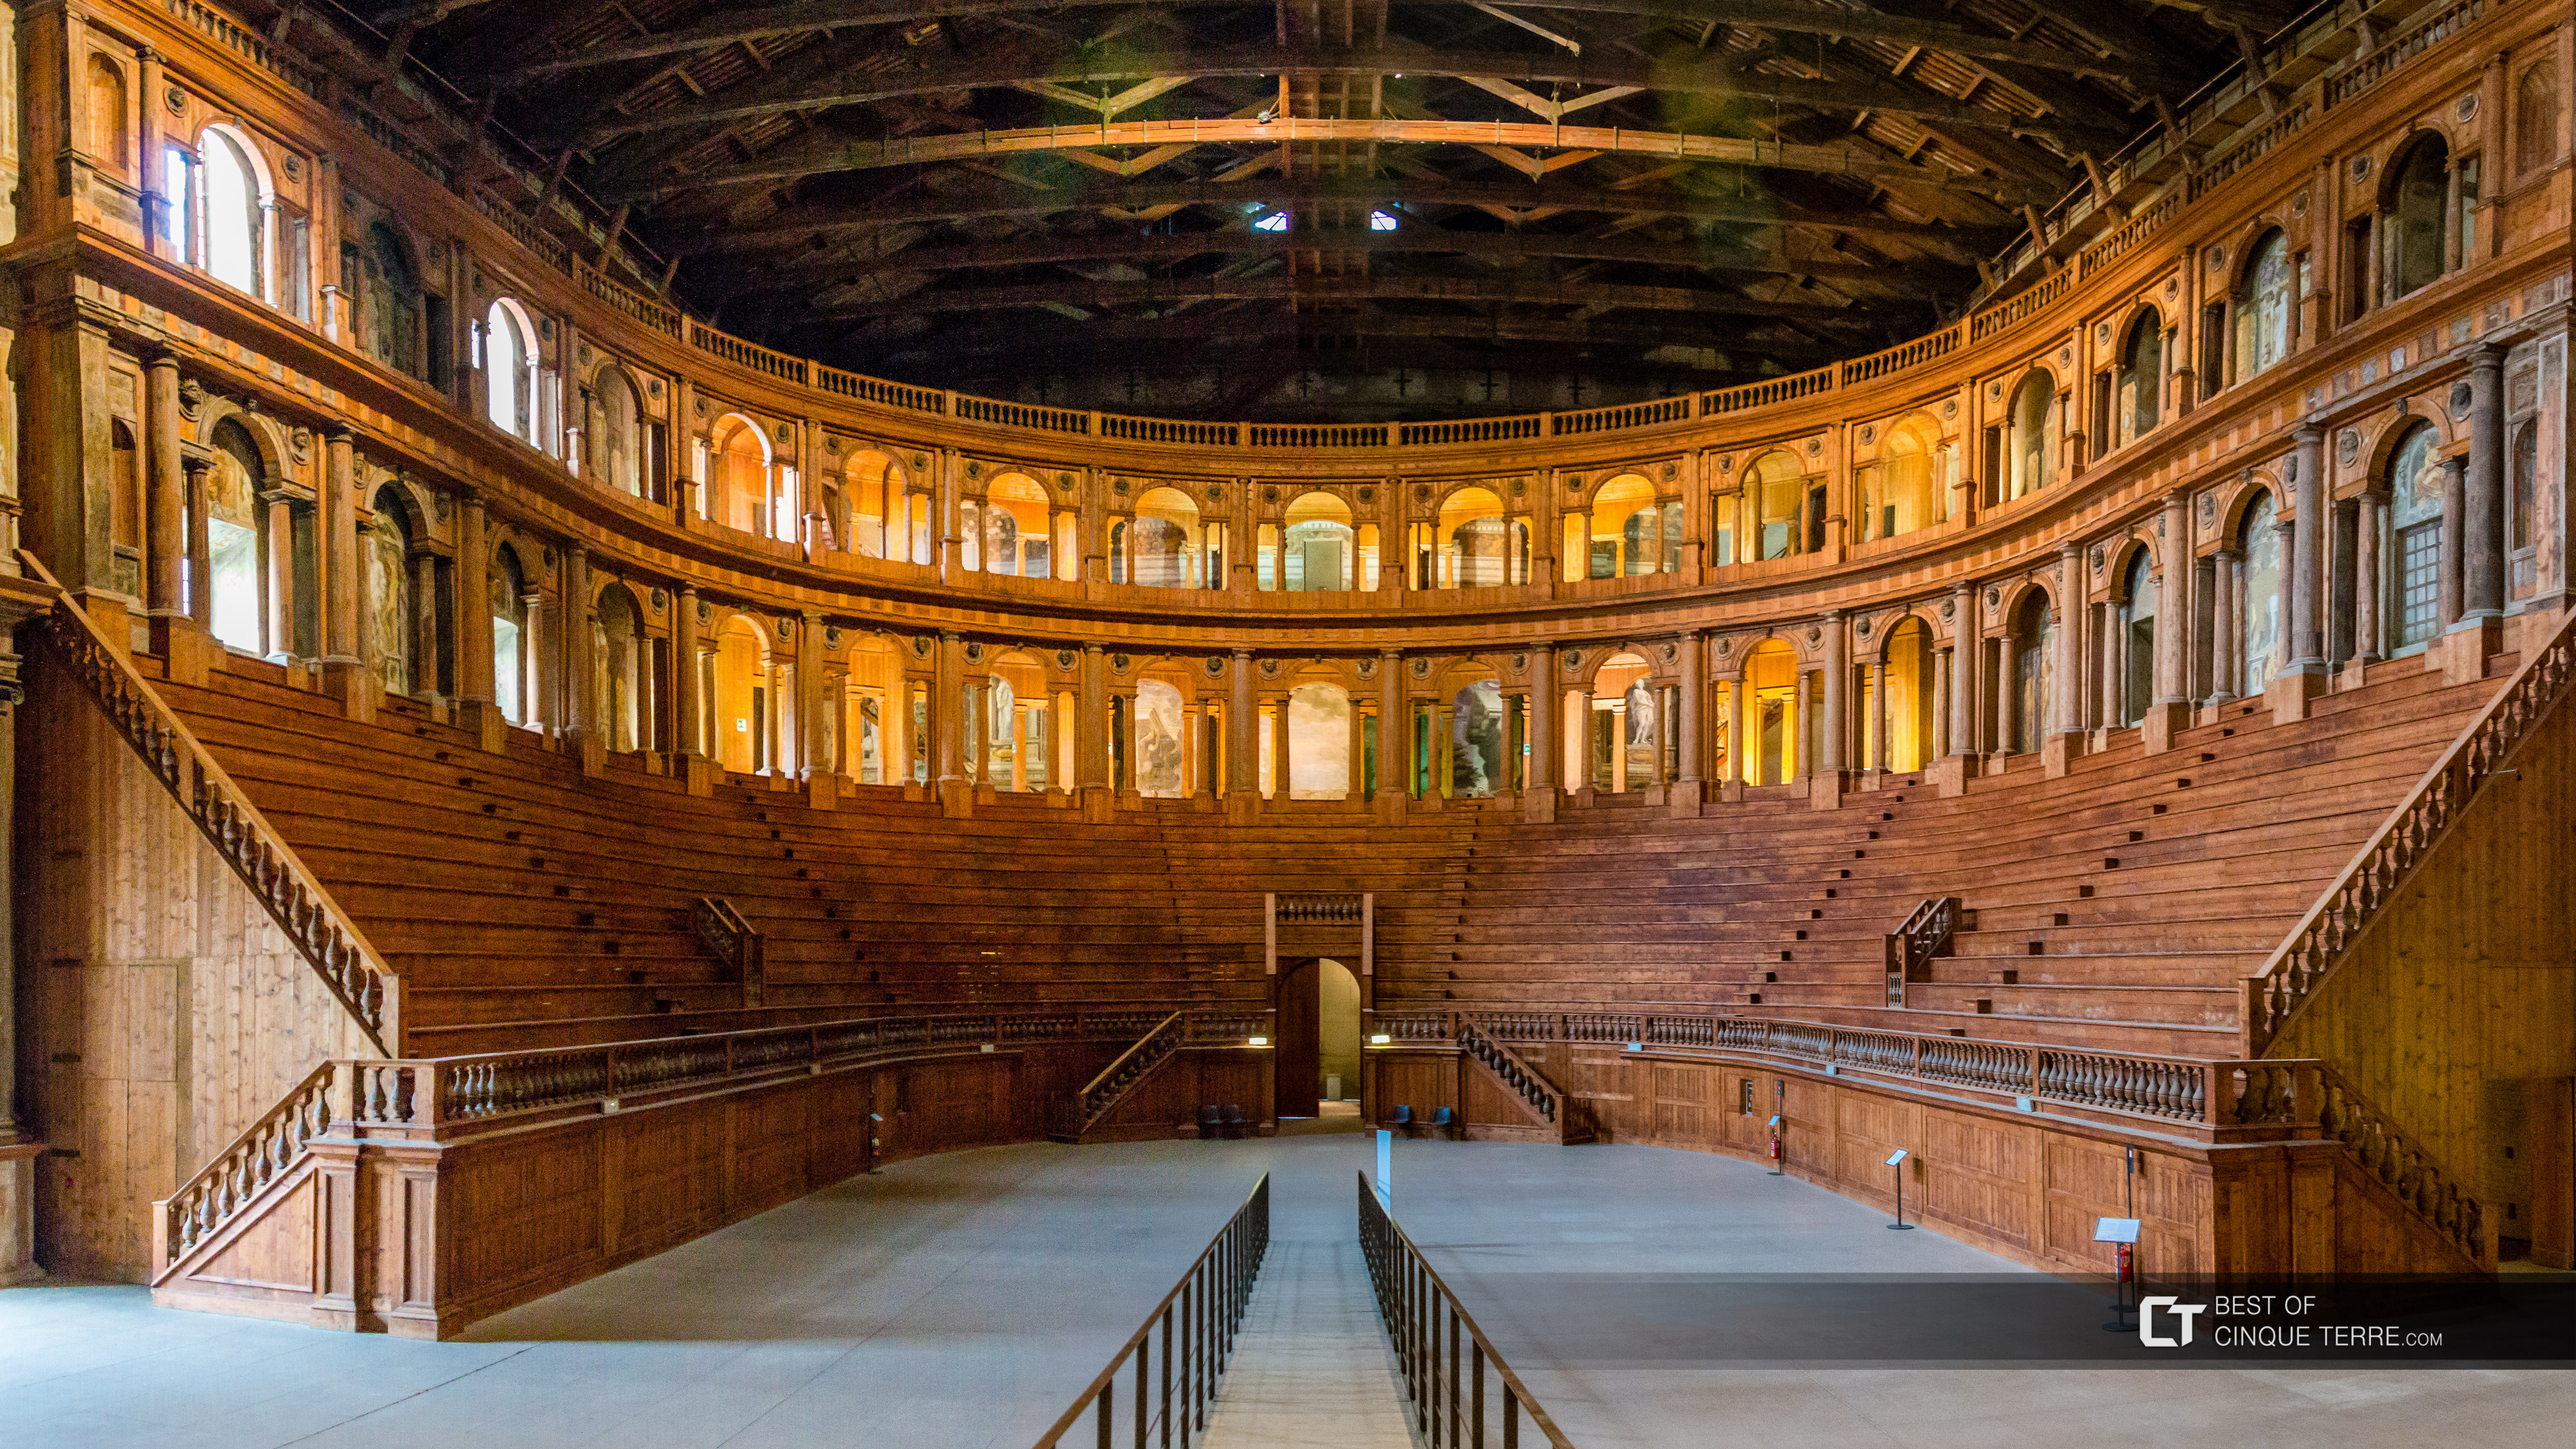 Farnese Theater in the National Art Gallery, Parma, Italy